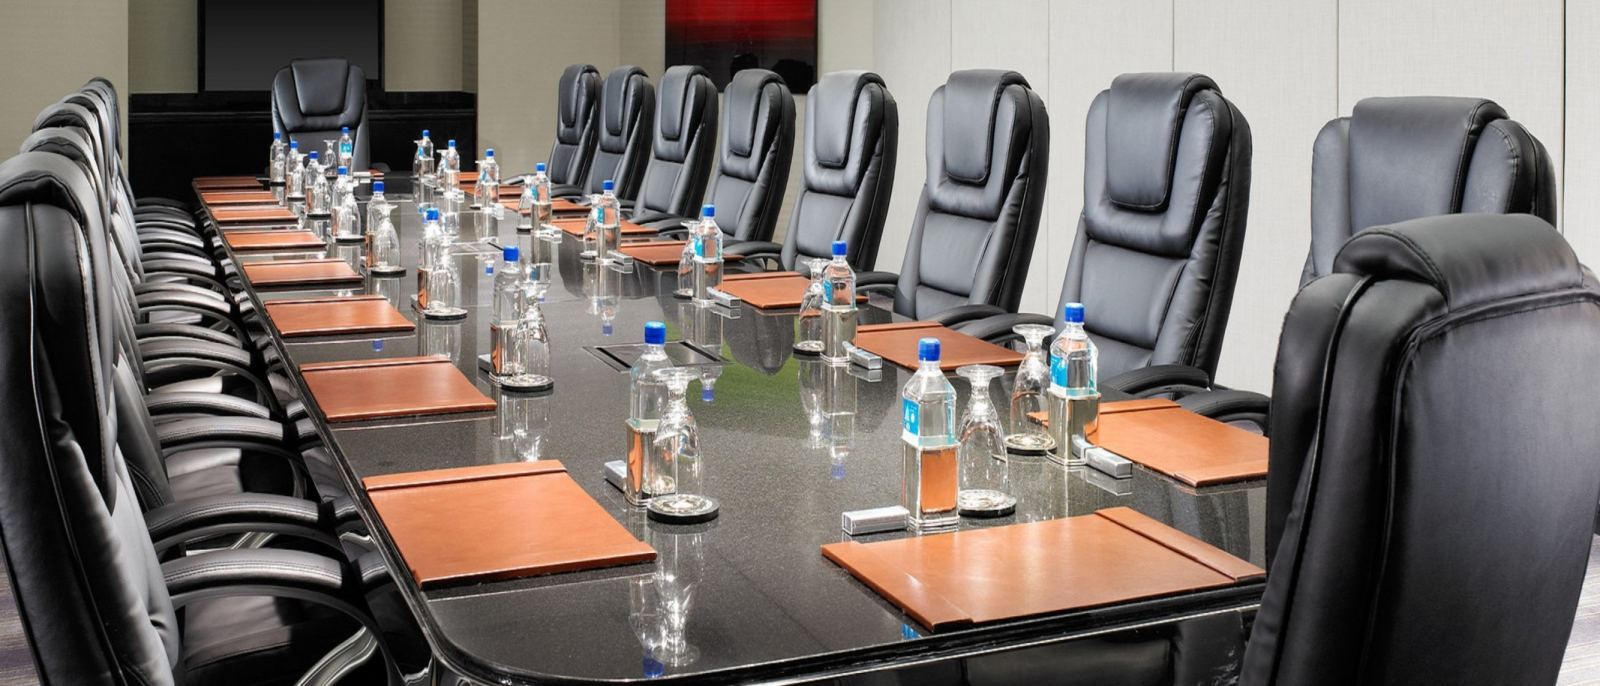 ExecutiveBoardroom-resized-image